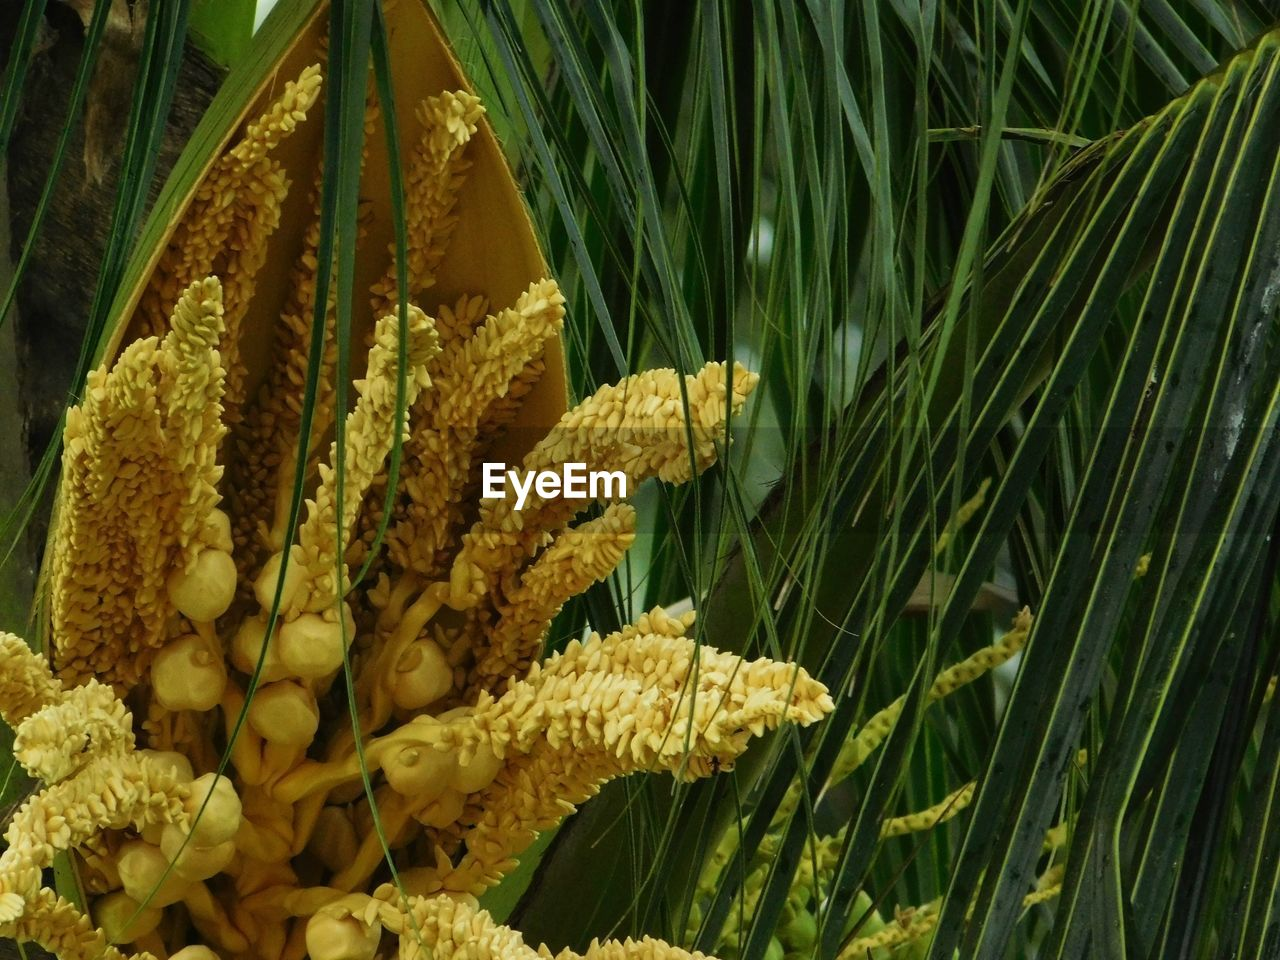 plant, nature, growth, close-up, no people, fragility, beauty in nature, vulnerability, yellow, day, freshness, green color, flower, flowering plant, leaf, plant part, focus on foreground, outdoors, food and drink, palm tree, flower head, marine